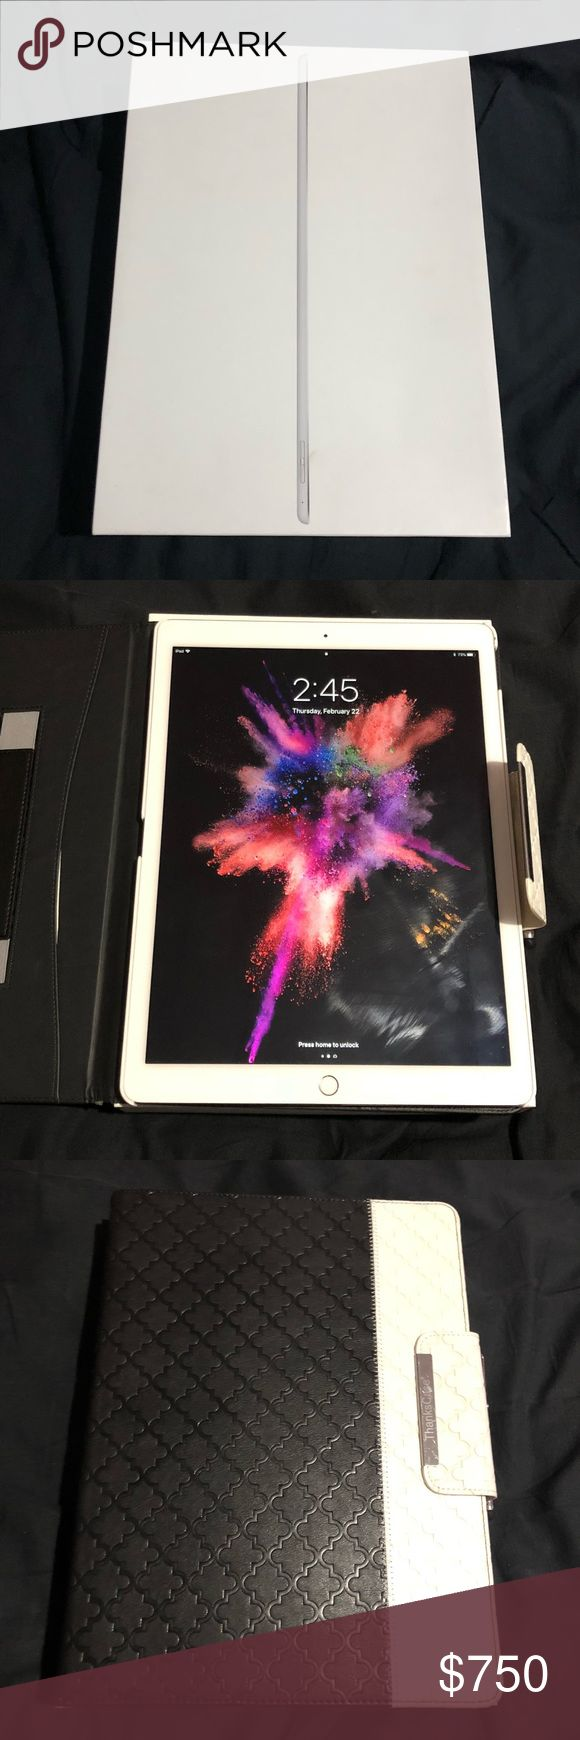 "Apple IPad Pro 12.9"" - 128GB W/ ACC Apple IPad Pro 12.9"" - 128GB WiFi with Accessories 🔥PRICE NEGOTIABLE🔥  Geek Squad Certified. Just purchased. Barely touched - EUC  Includes: All original Accessories ( manual, charger, decal, box) Swivel Case Stylus Screen Protector ( already applied on IPad ) Apple Accessories"